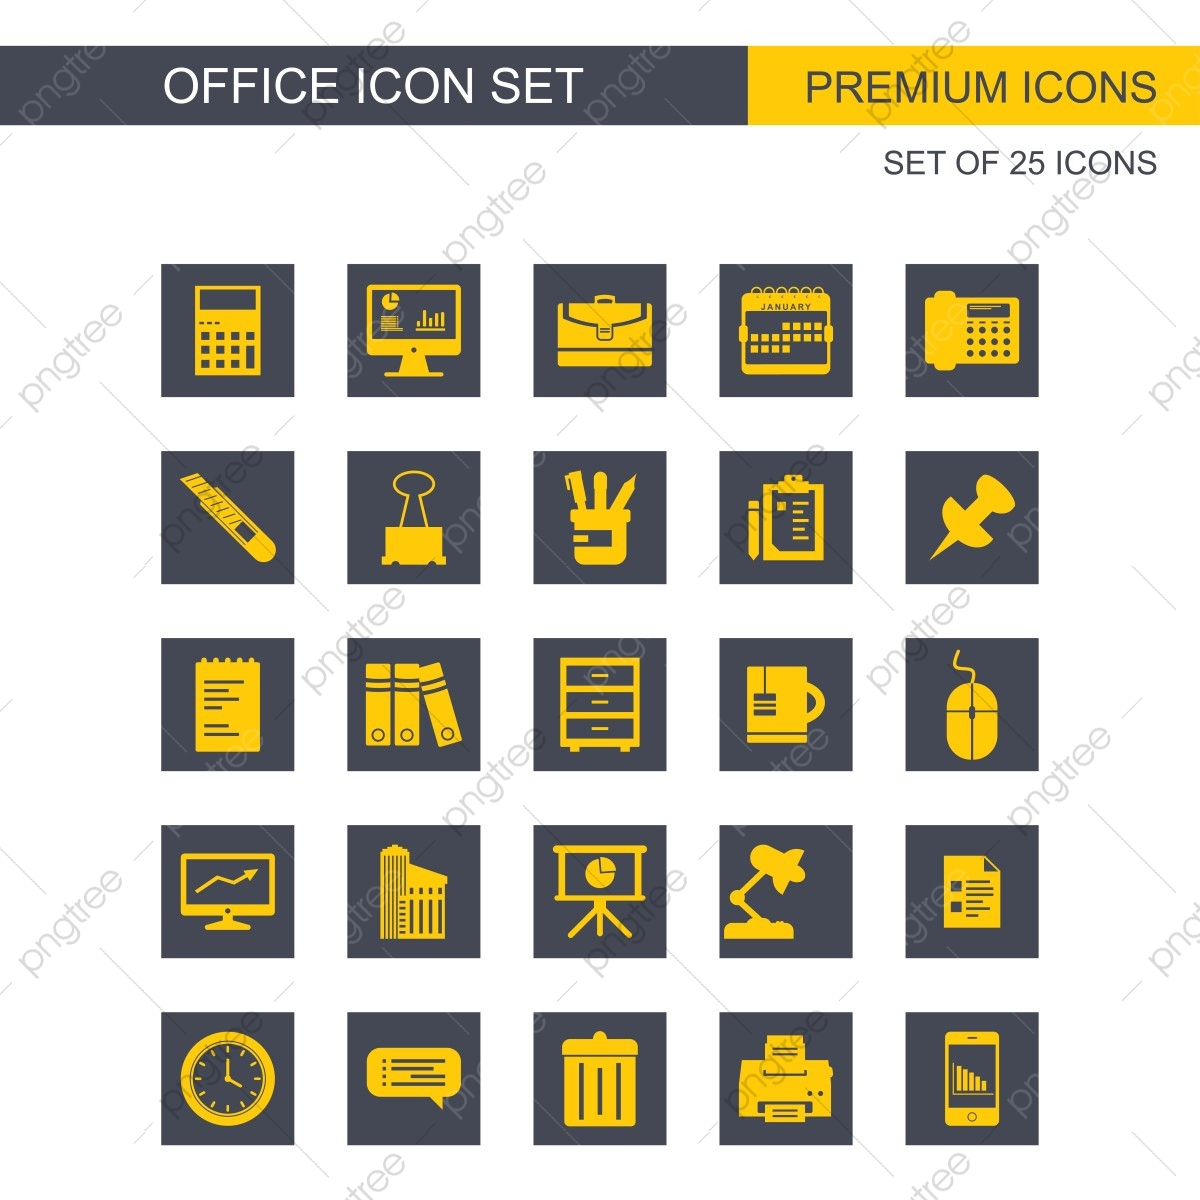 Office Icons Set, Icon, Office, Icons PNG and Vector with